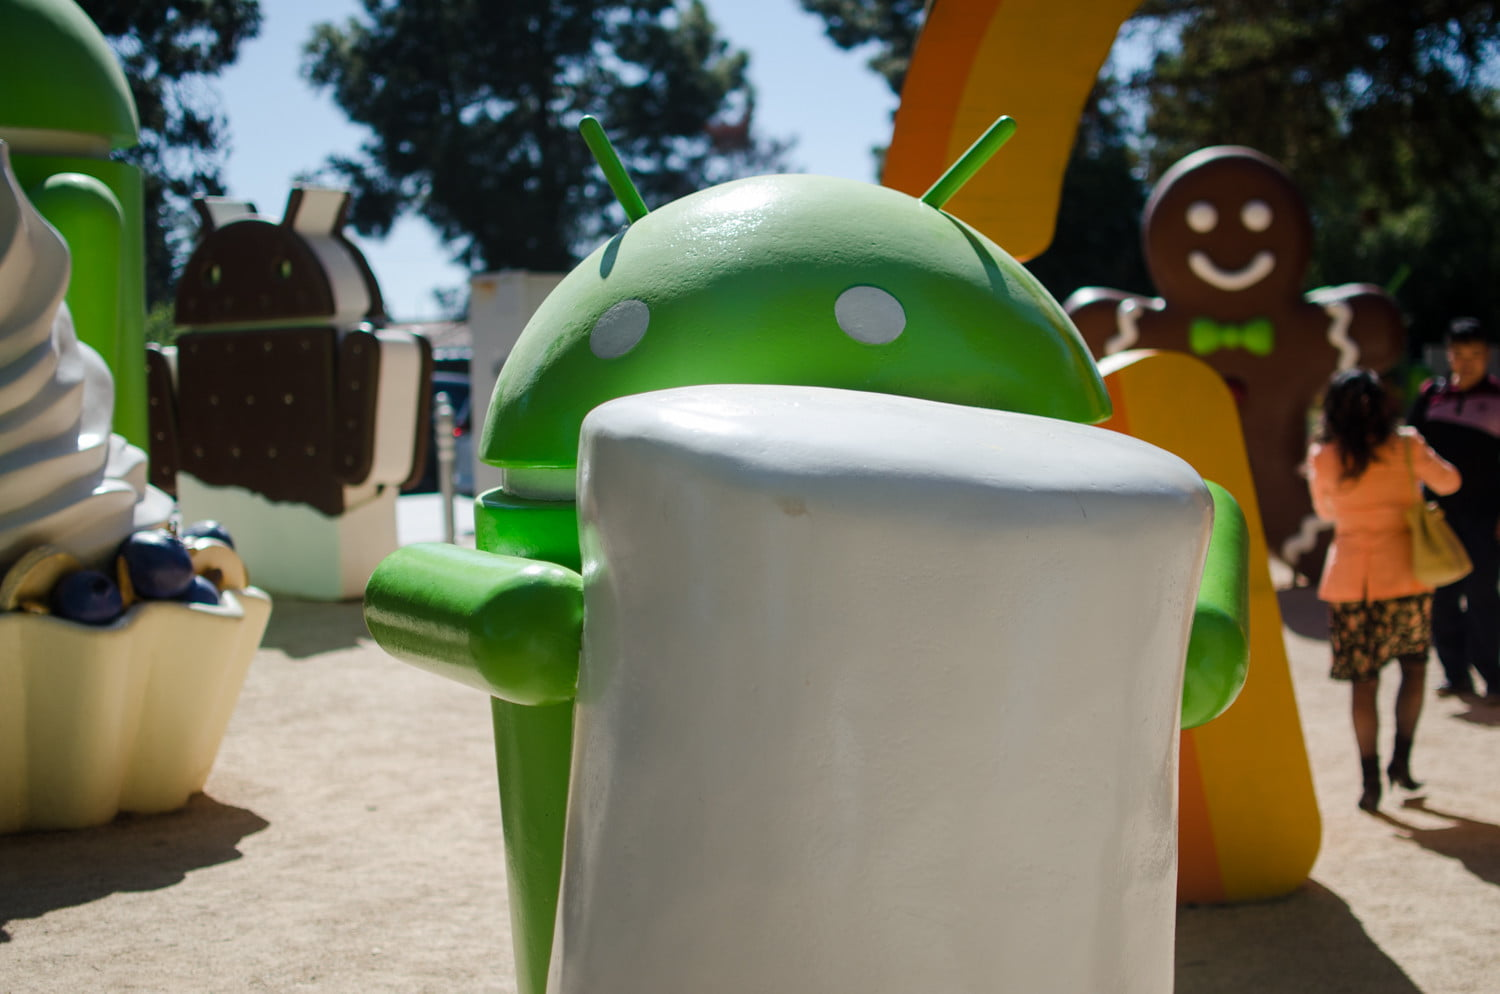 Android 1.0 To Android 10: Here's How Google's OS Changed Over Time!